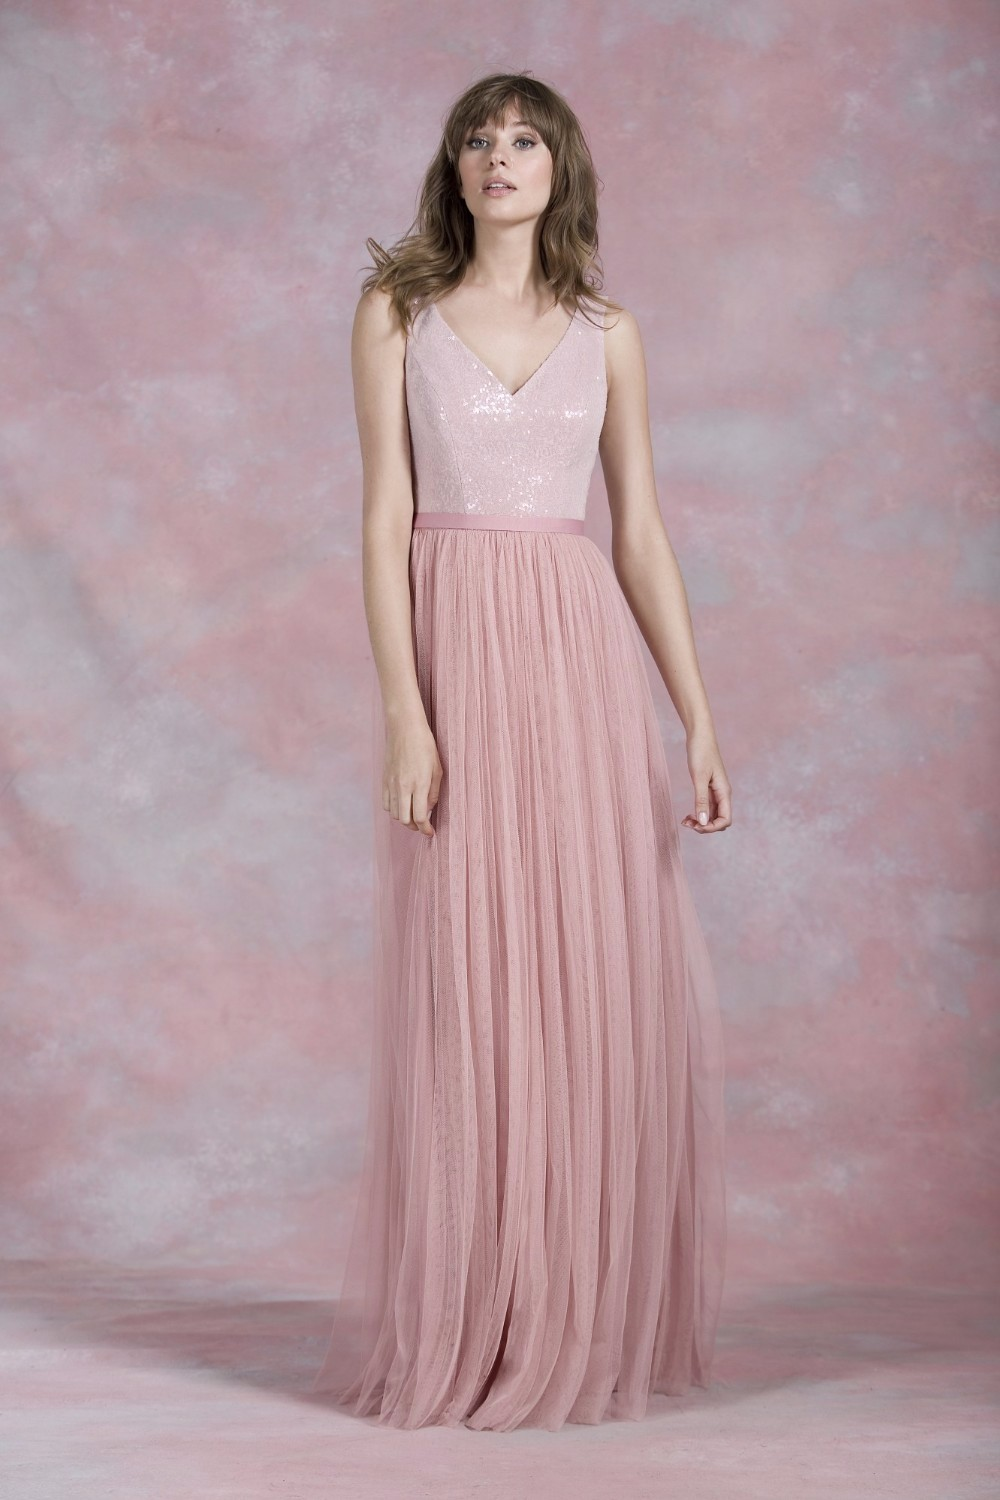 Nude Pink Sequined A Line Zipper Back Long Tulle Bridesmaid Dress 1